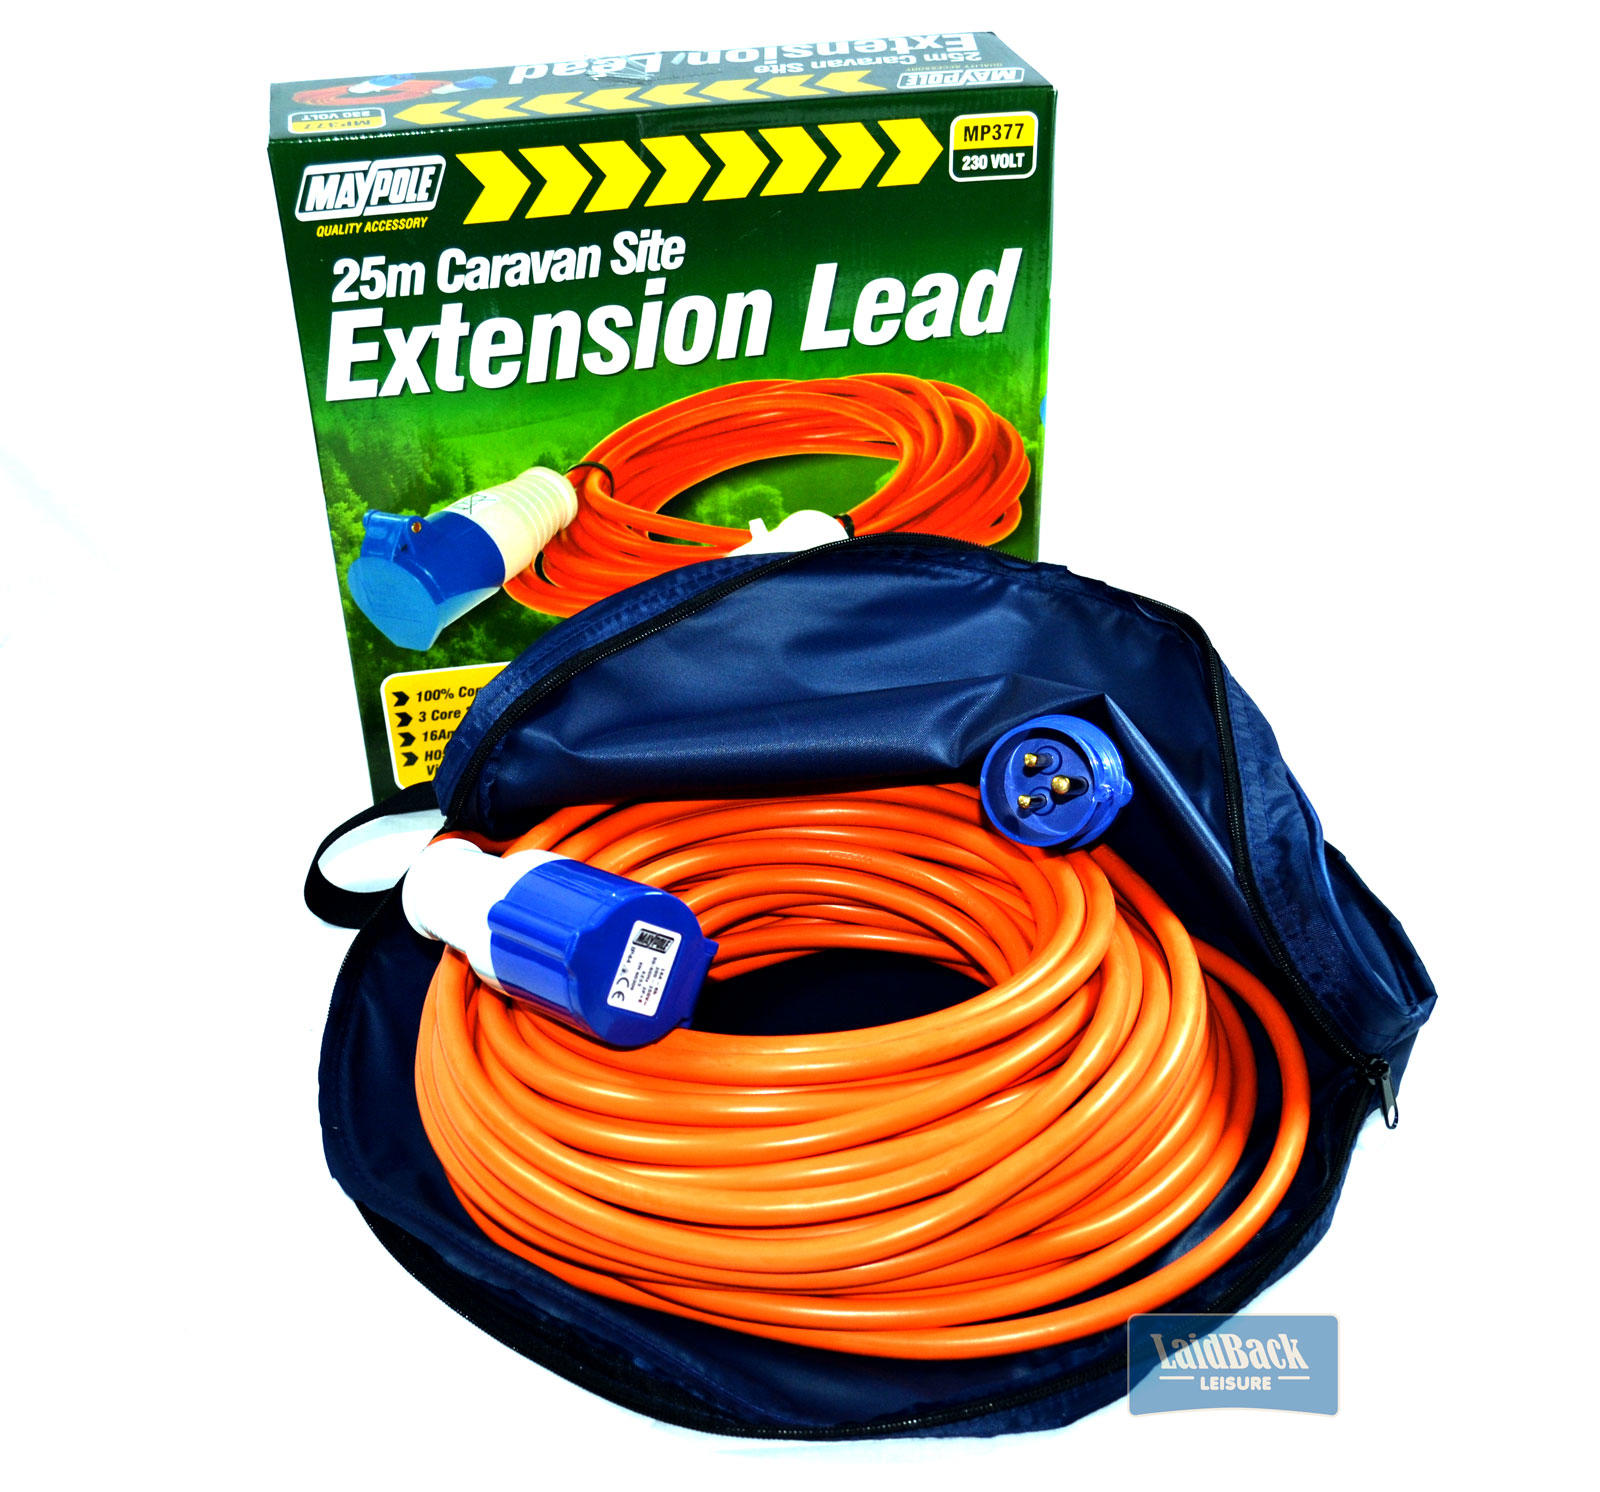 Maypole 230v uk hook up lead